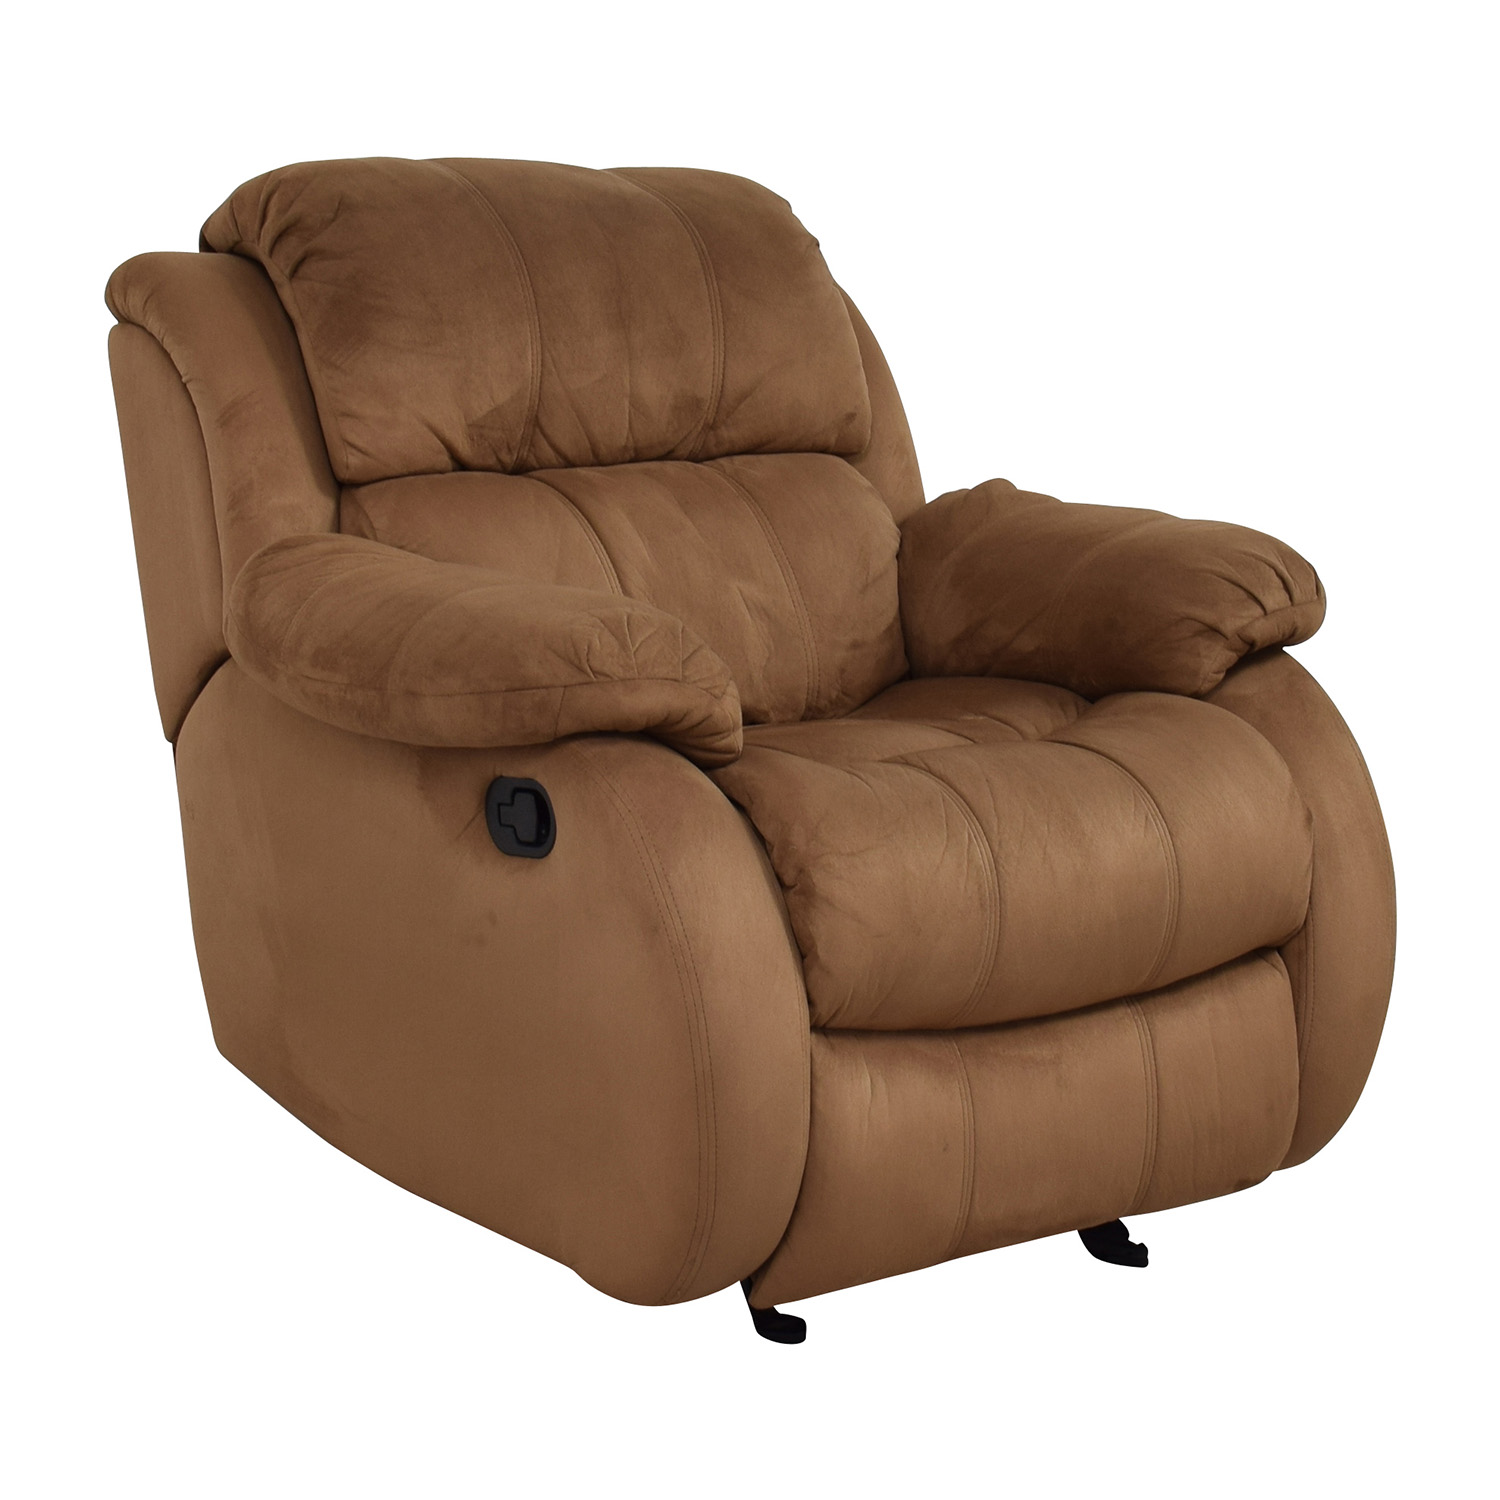 64% OFF Bob s Discount Furniture Bob s Furniture Brown Memory